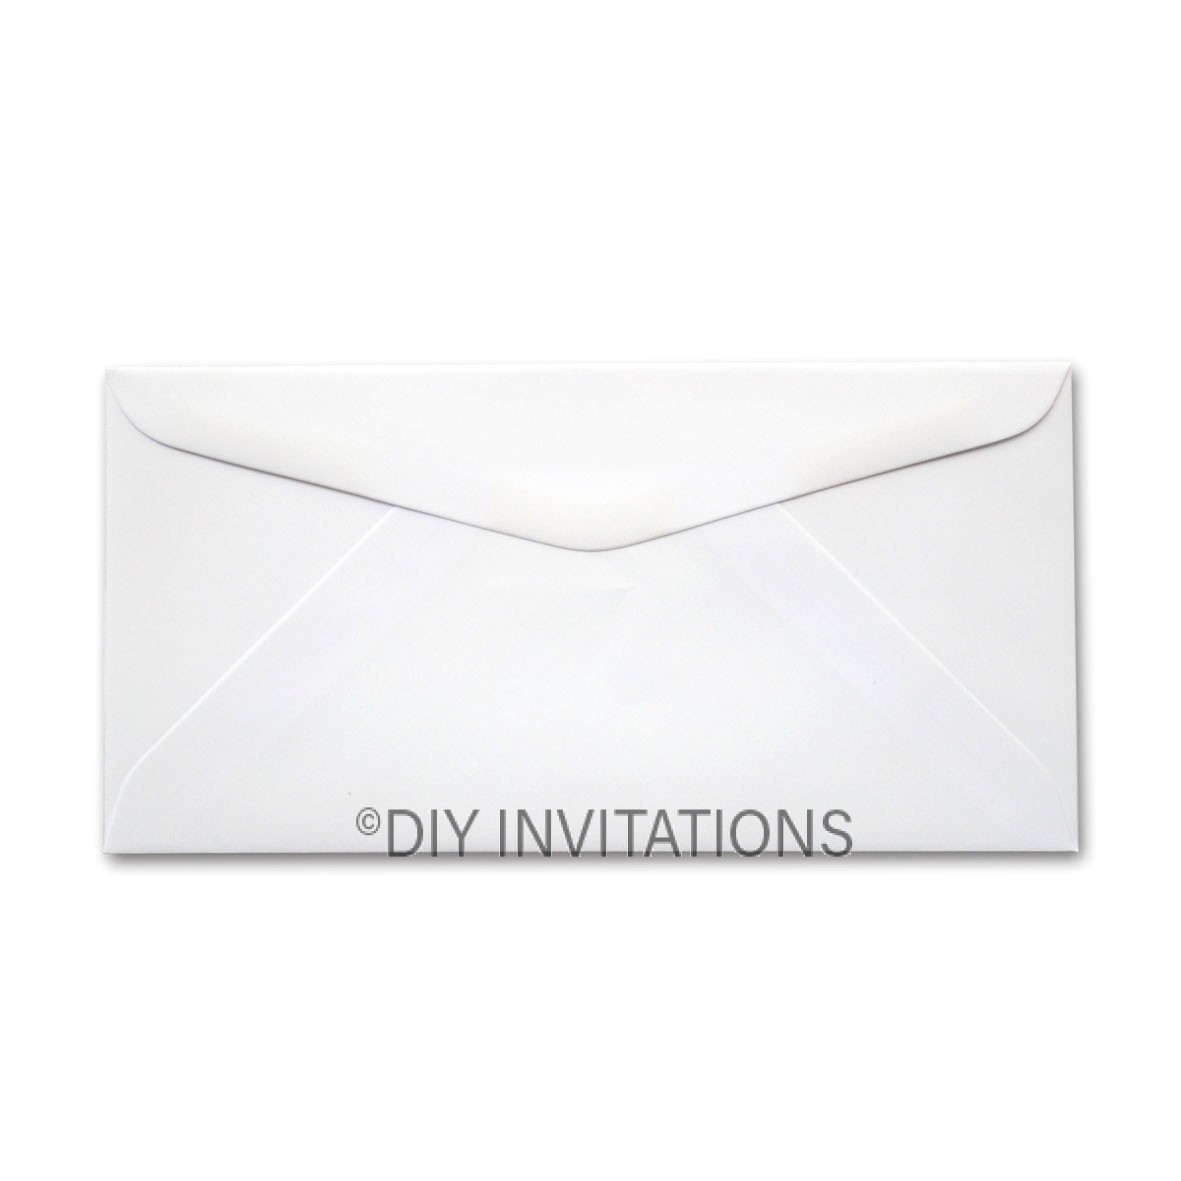 DL White Linen Envelope (110x220mm)